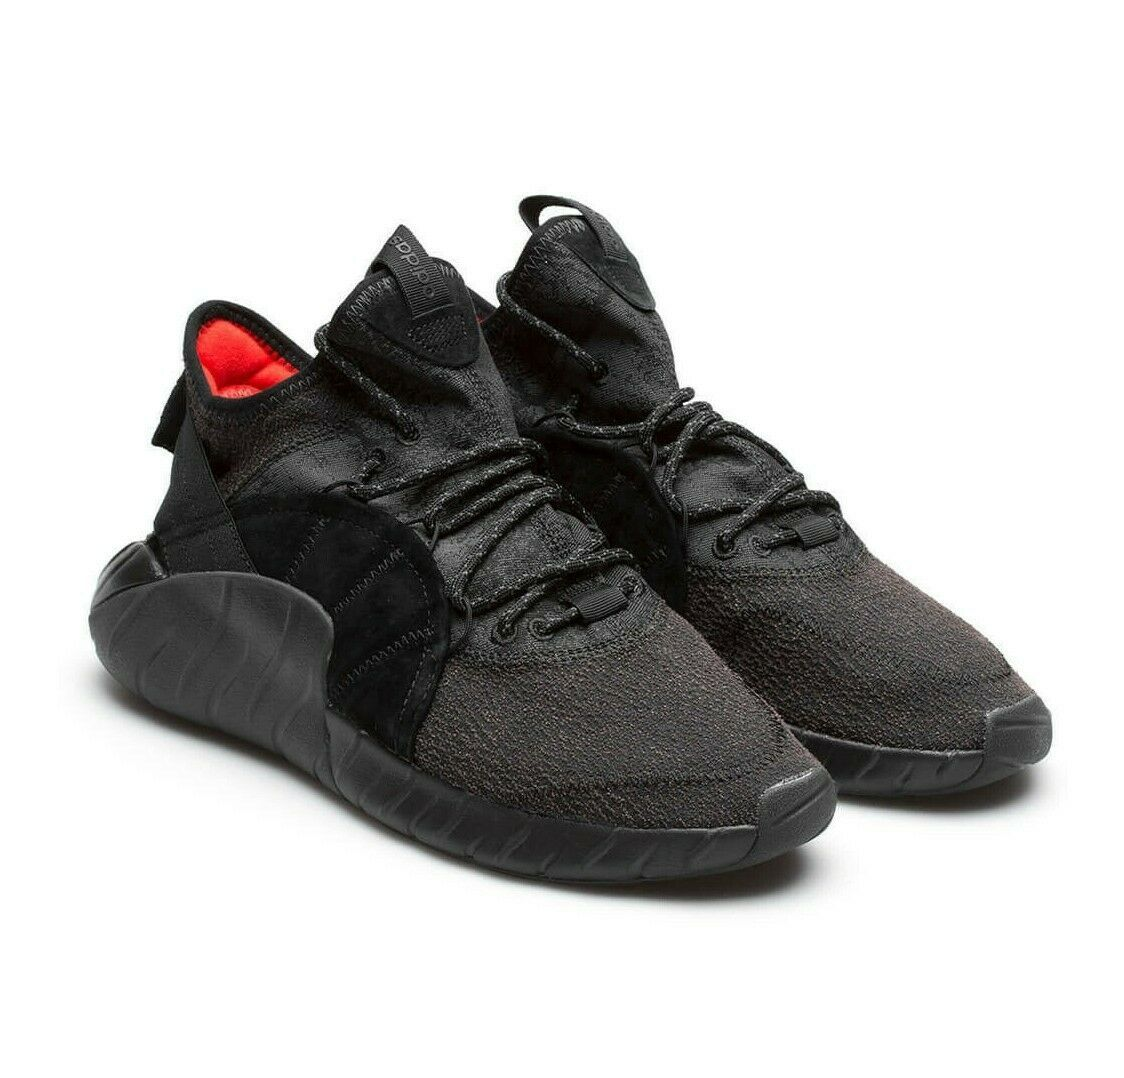 Adidas Tubular Rise Core Black Red BY3557 Mens Casual Shoes Size 9.5